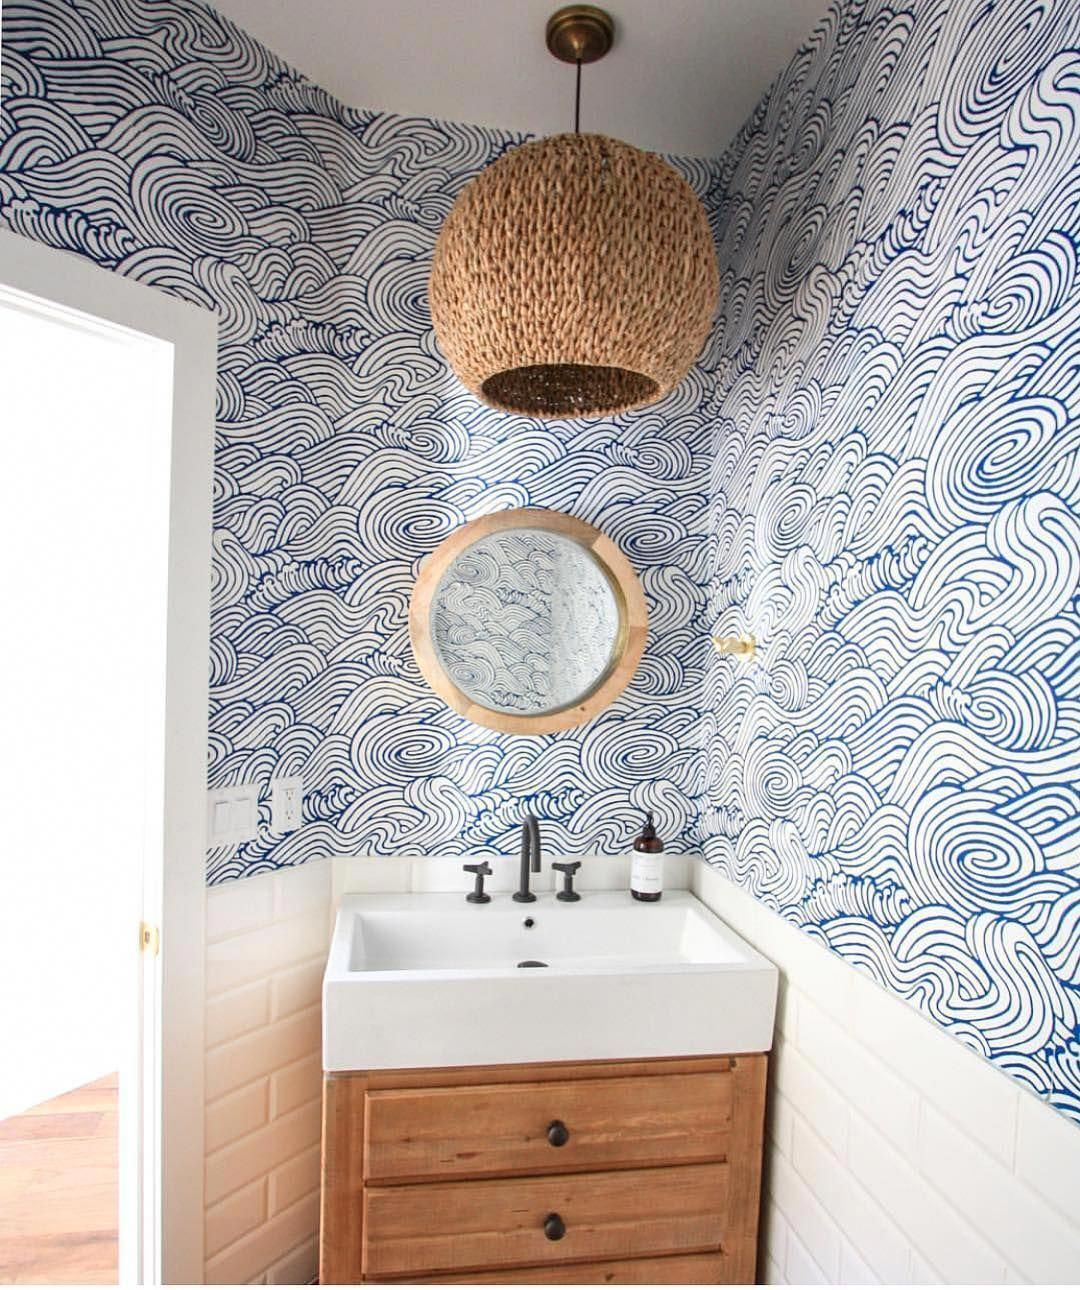 I M Just Certainly Getting Excited About Trying Out Doing This Toilets For Small Bathrooms In 2020 Powder Room Wallpaper Coastal Powder Room Powder Room Small